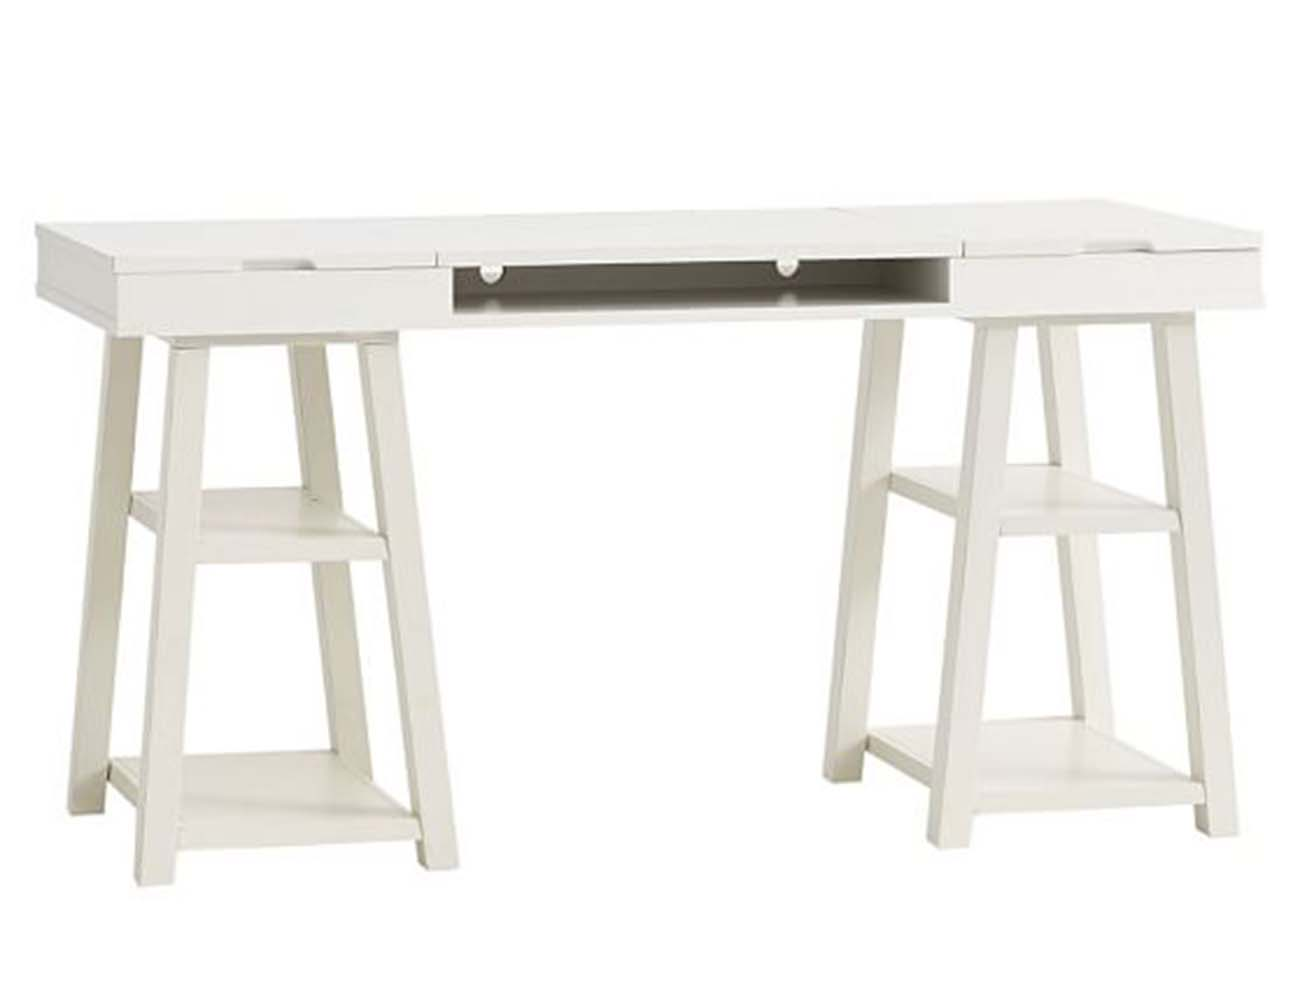 Customize-It Project Trestle Desk